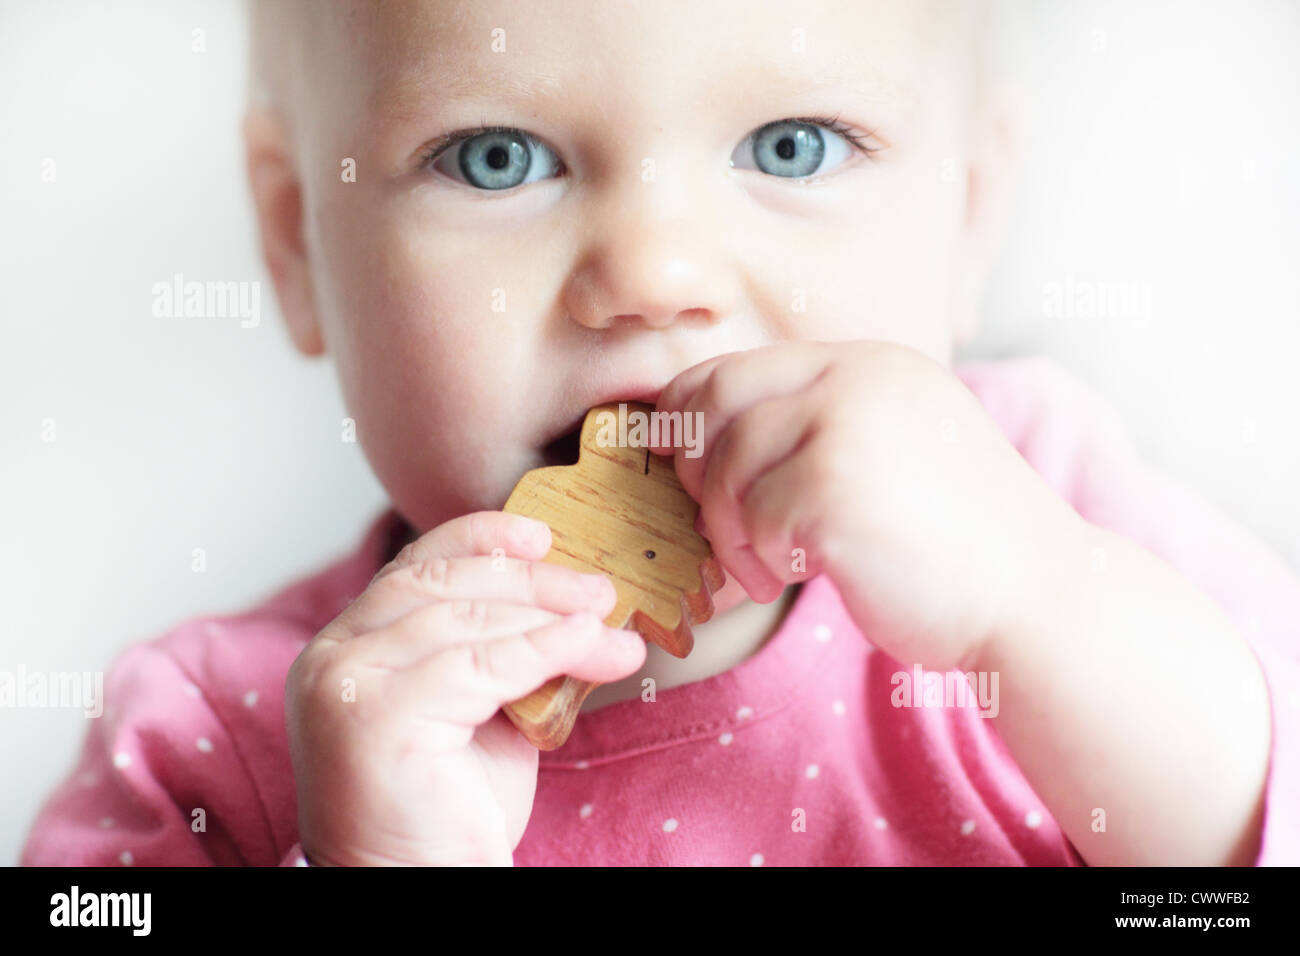 Toddler chewing on toy block - Stock Image